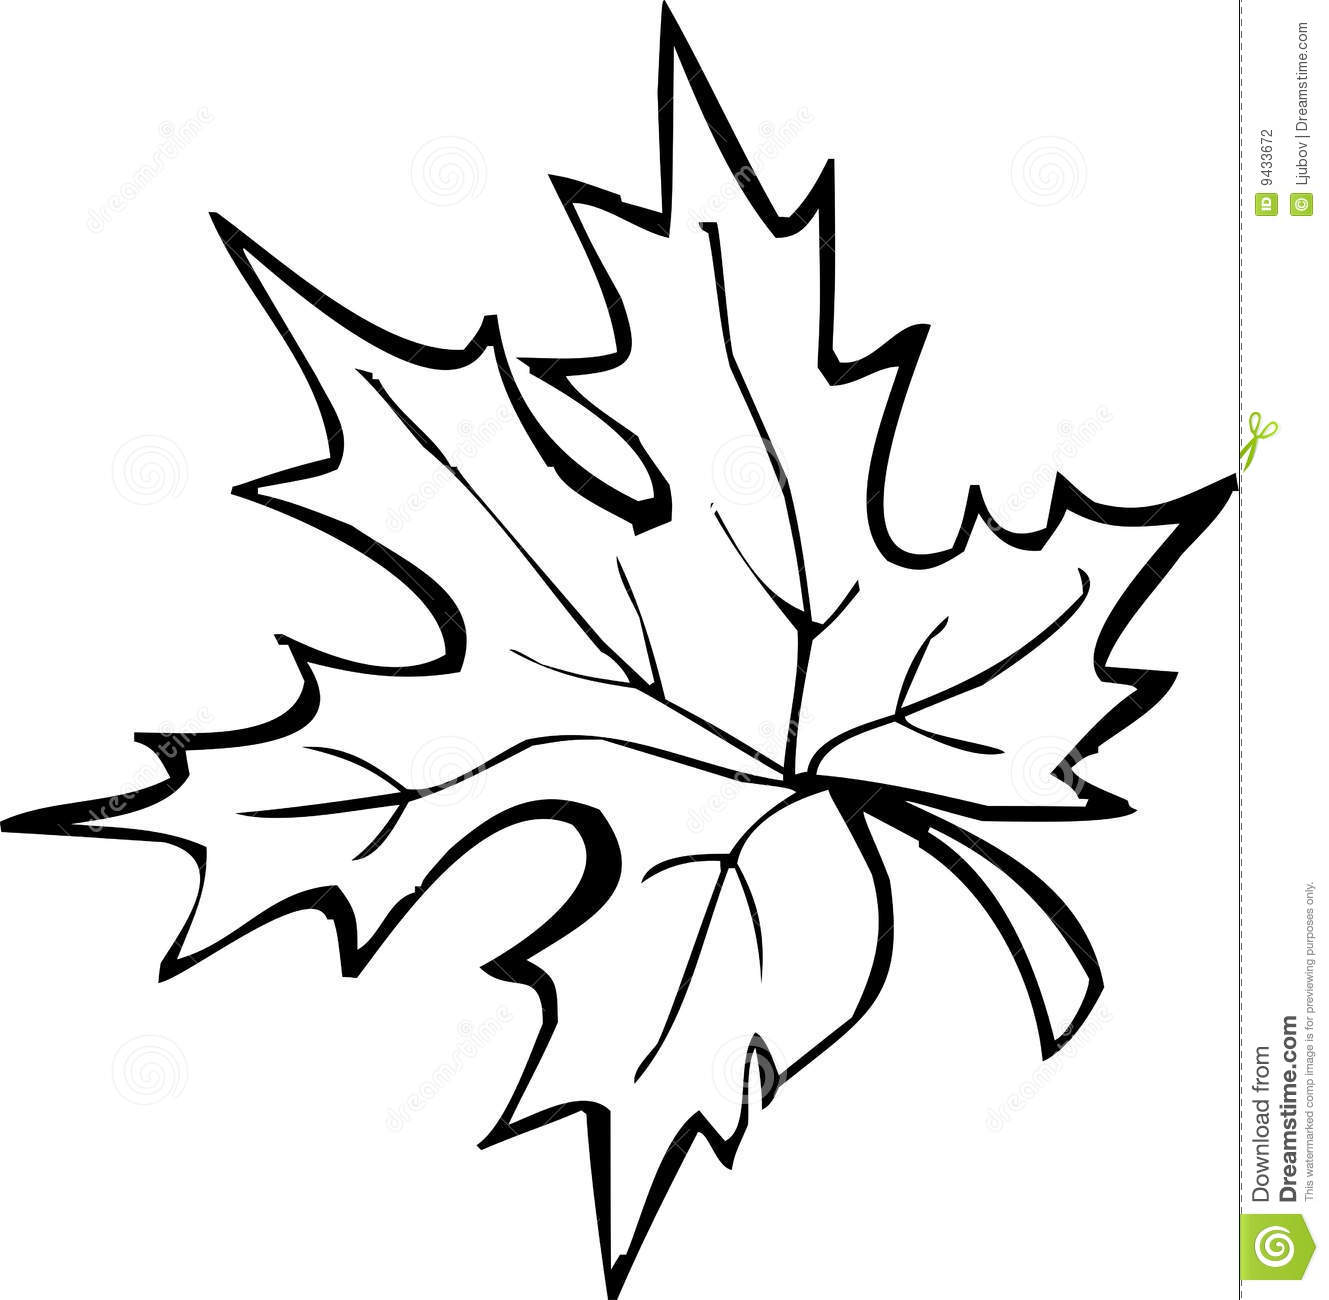 1329x1300 Leaf Black And White Clipart